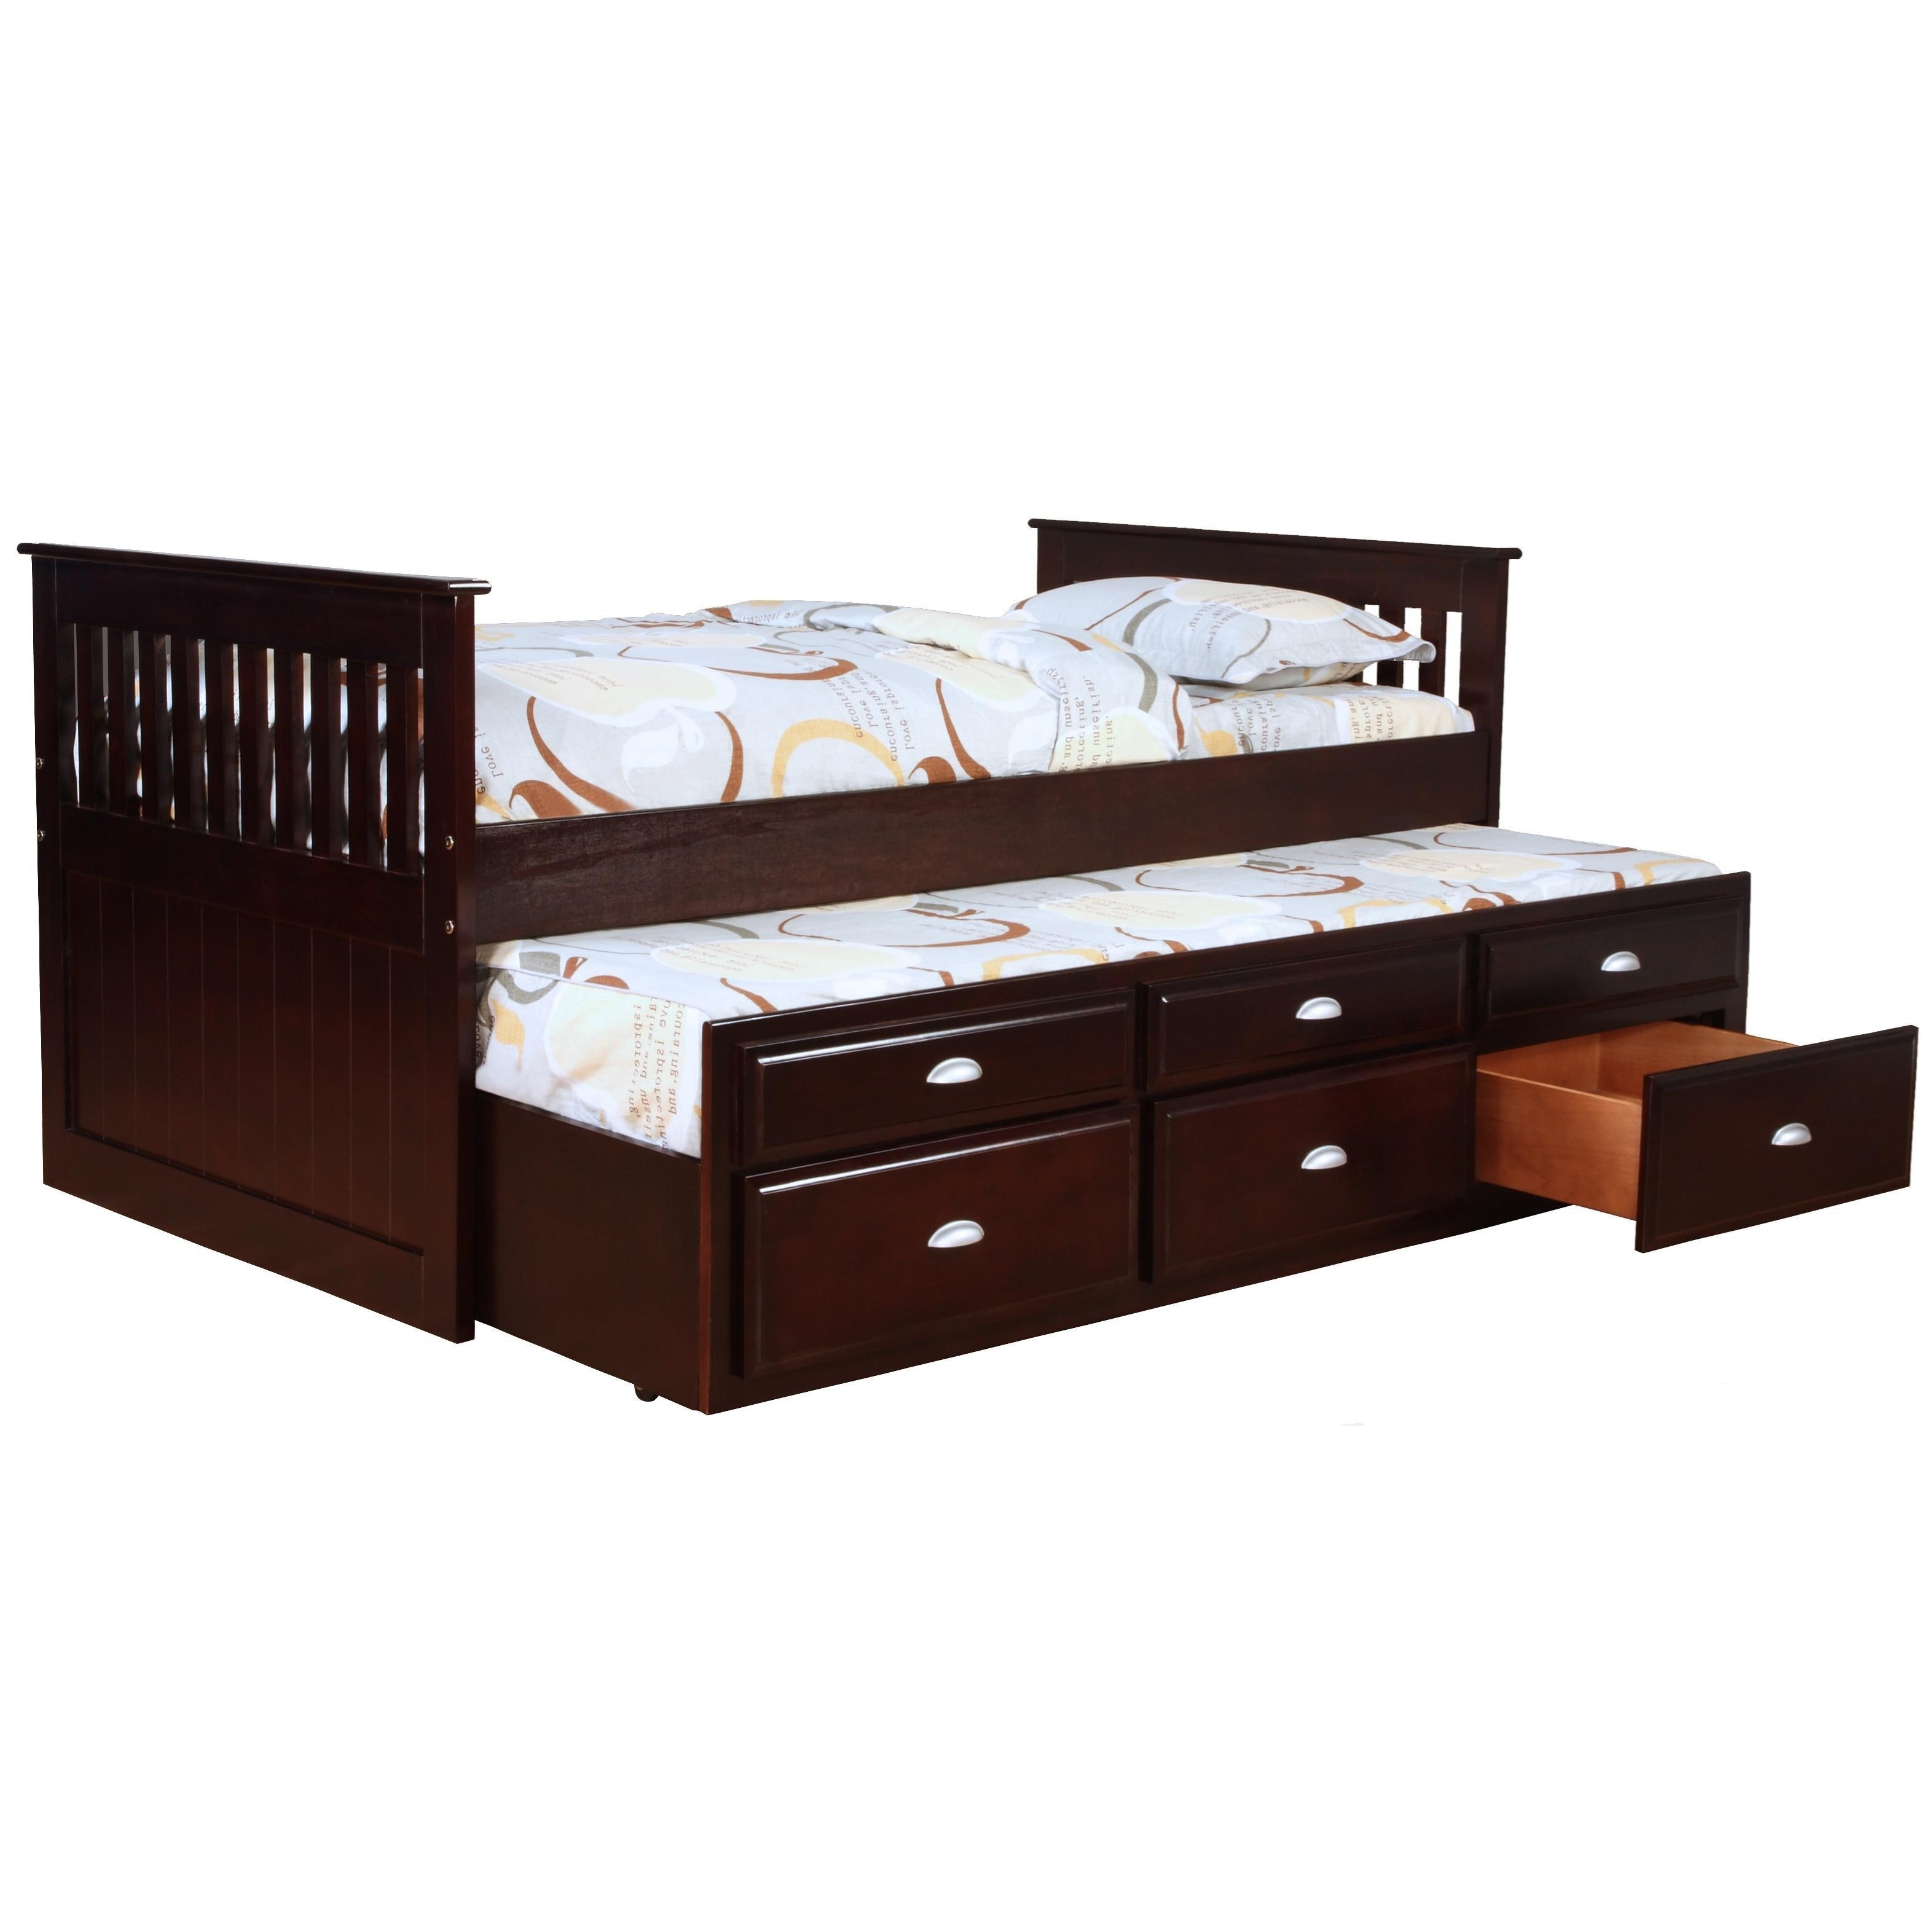 Bernards Logan Captains Bed with Trundle and Storage  Wayside Furniture  Captains Beds